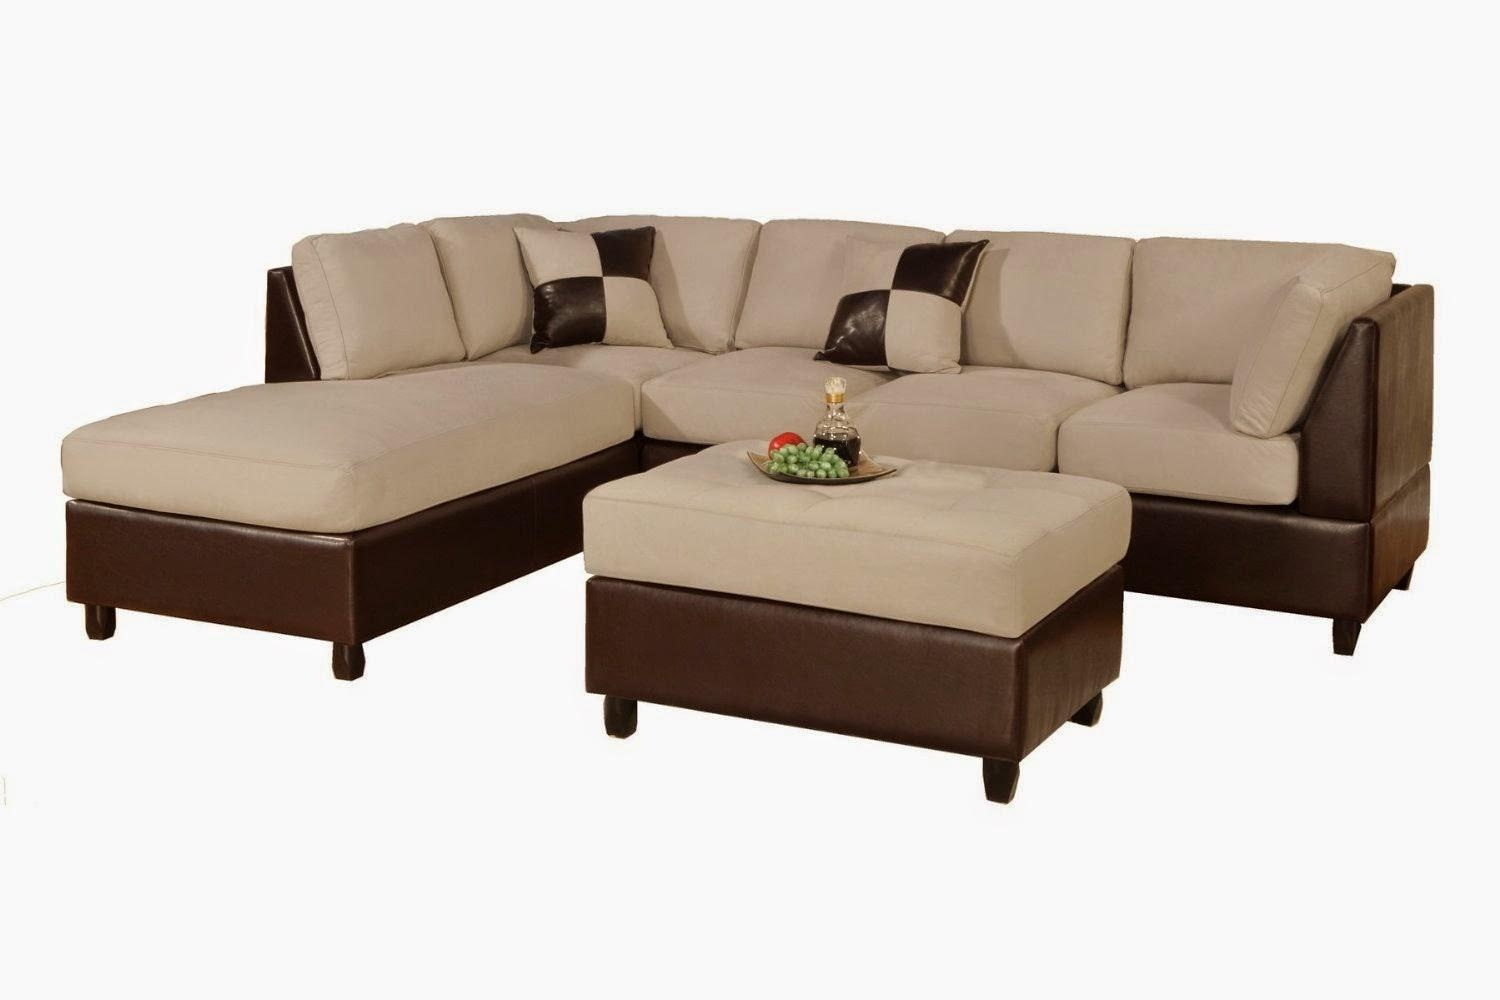 sears furniture sofas small living room ideas with leather sofa 20 best